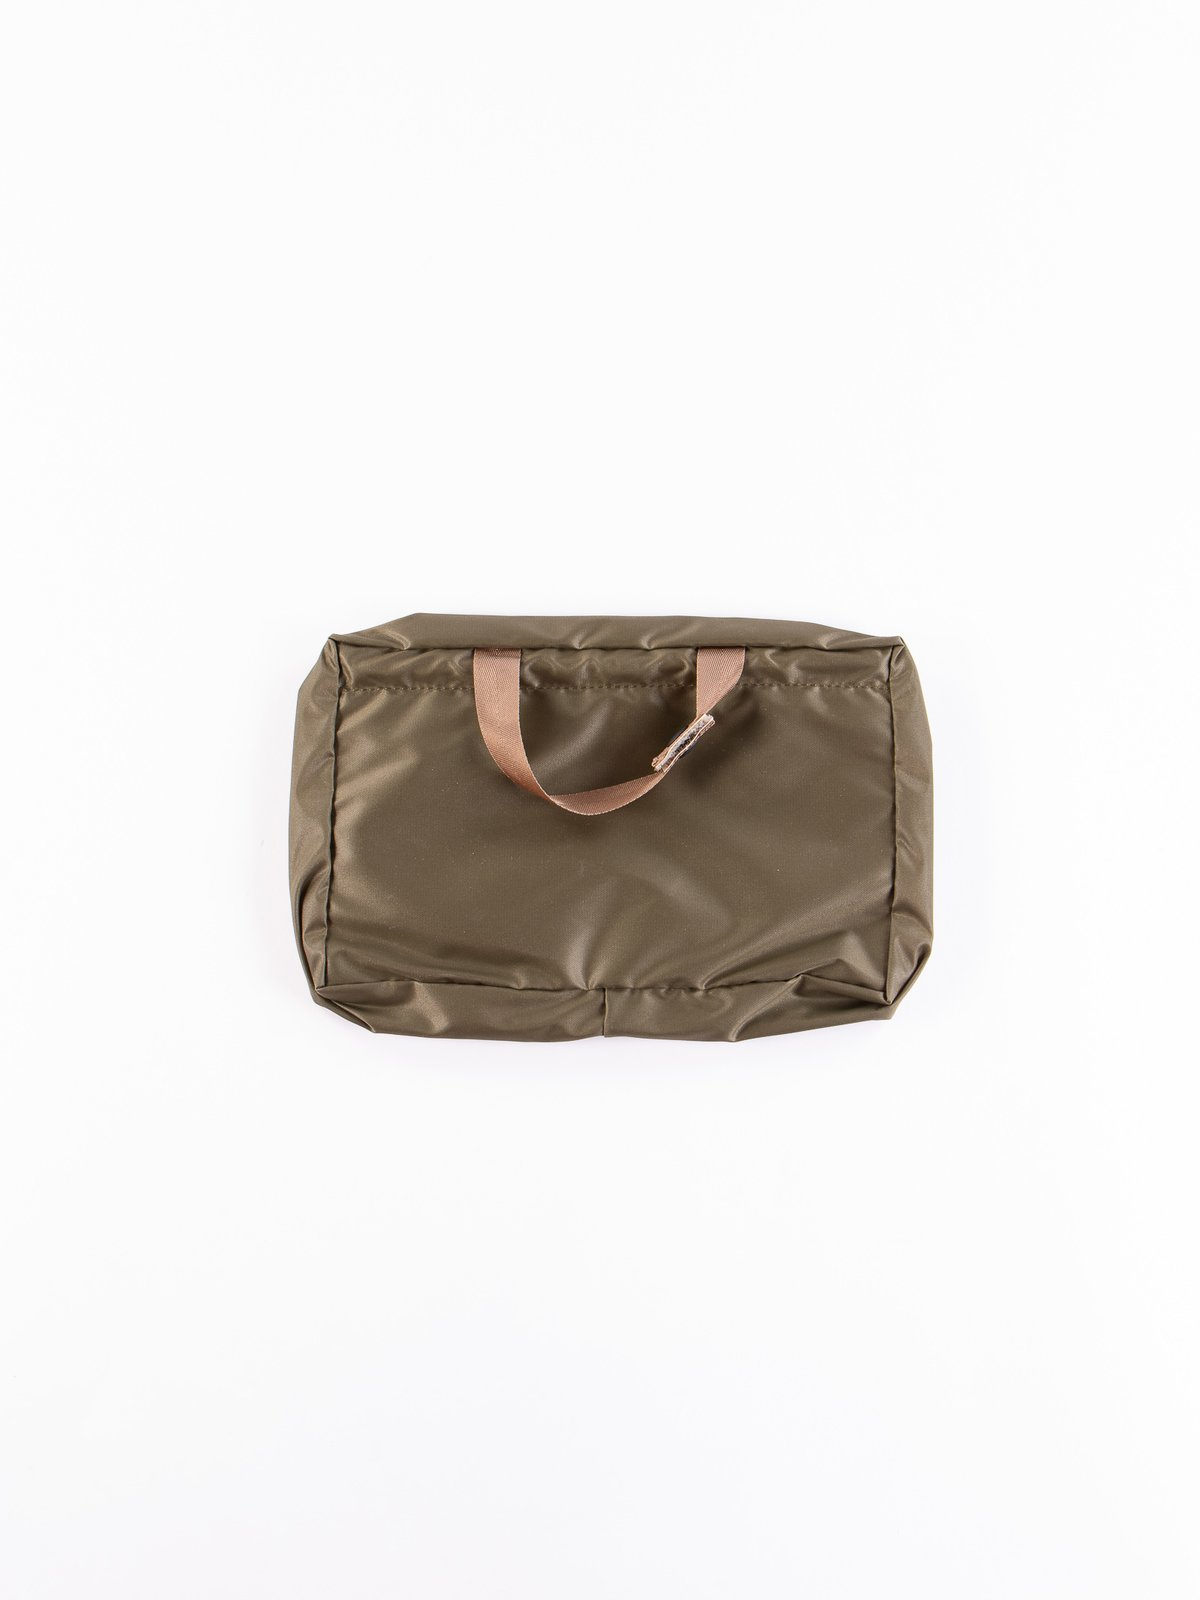 Olive Drab Snack Pack 09812 Pouch Large - Image 3